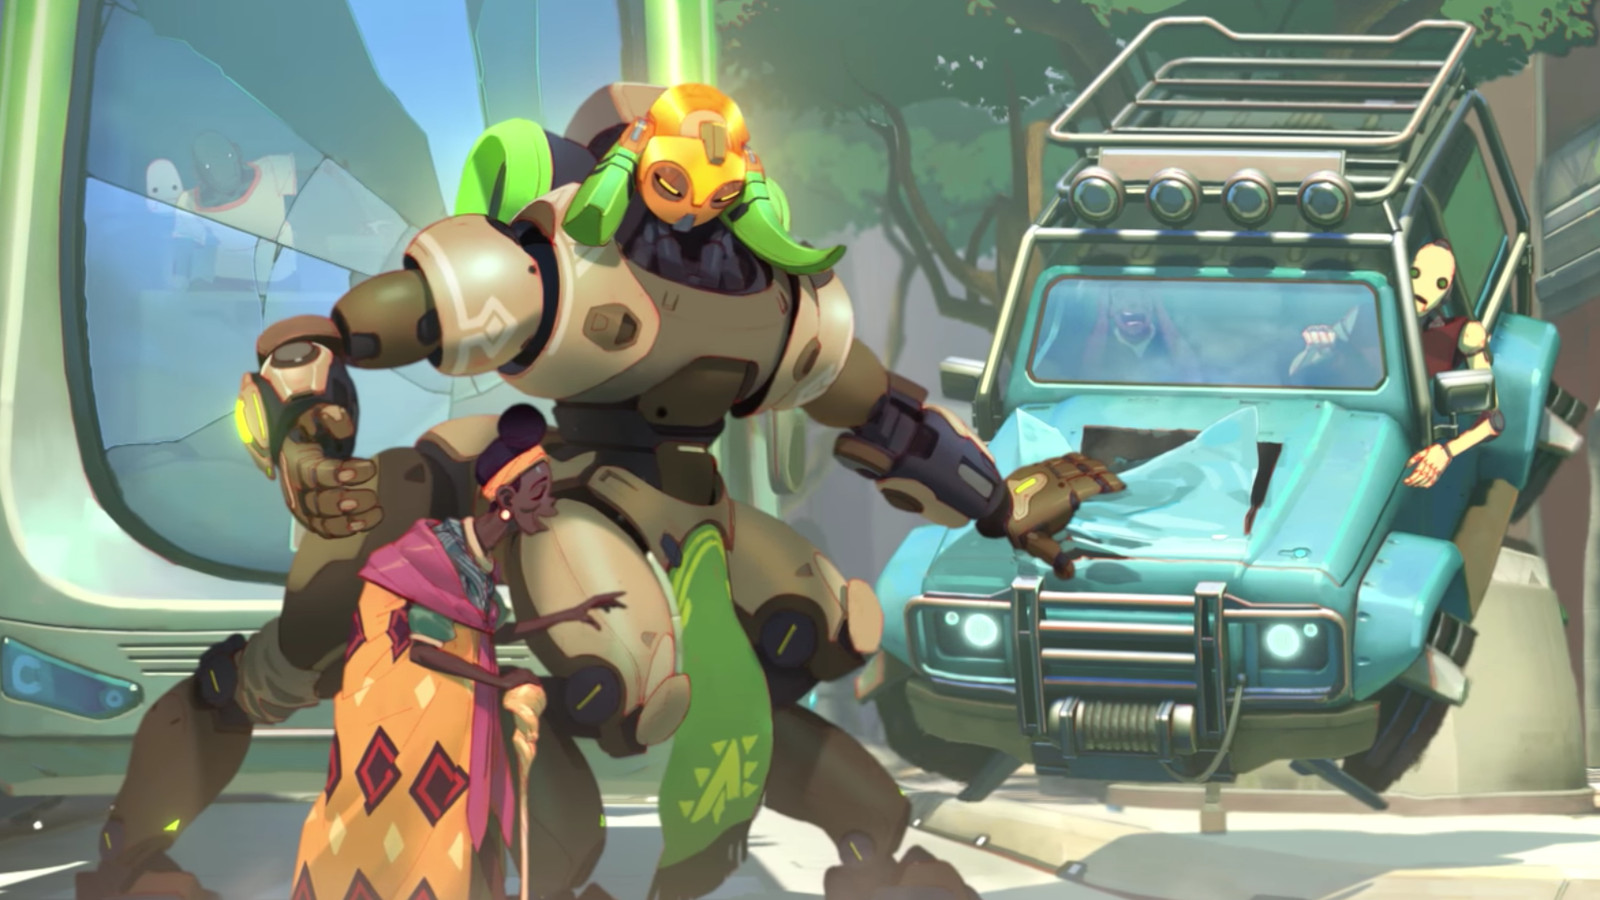 Wallpaper Minecraft Hd 3d Overwatch S New Hero Orisa All Her Skins Emotes And